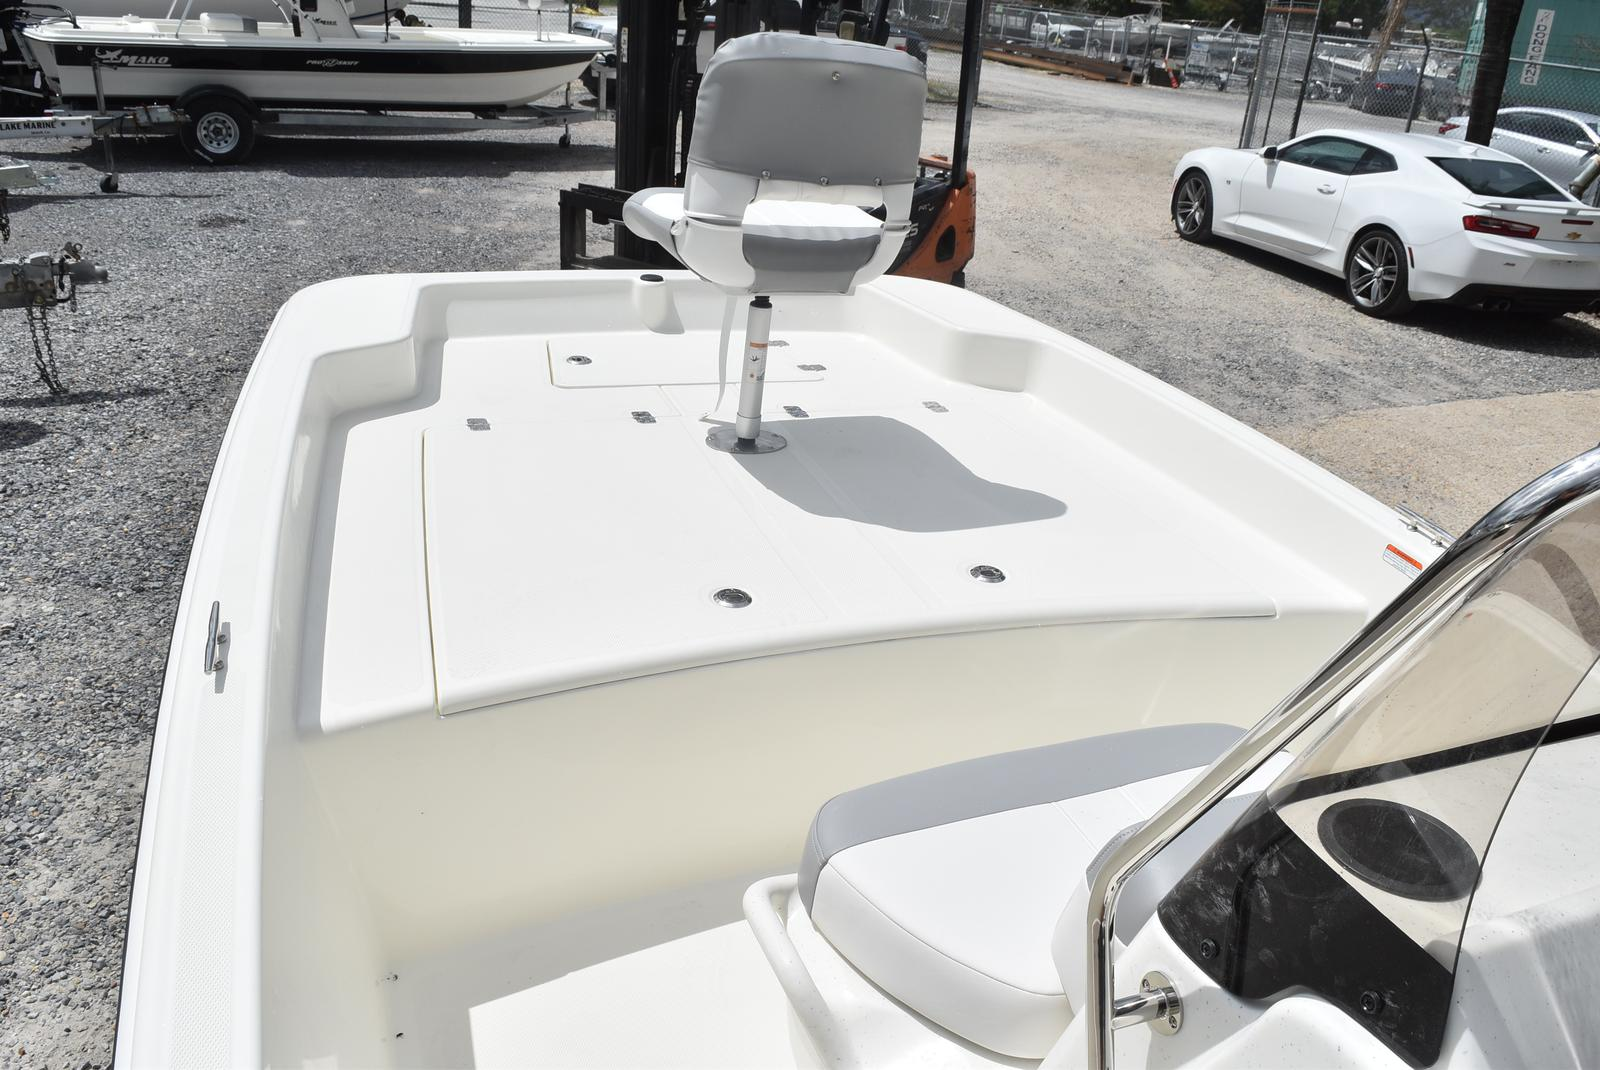 2020 Mako boat for sale, model of the boat is Pro Skiff 17, 75 ELPT & Image # 423 of 702